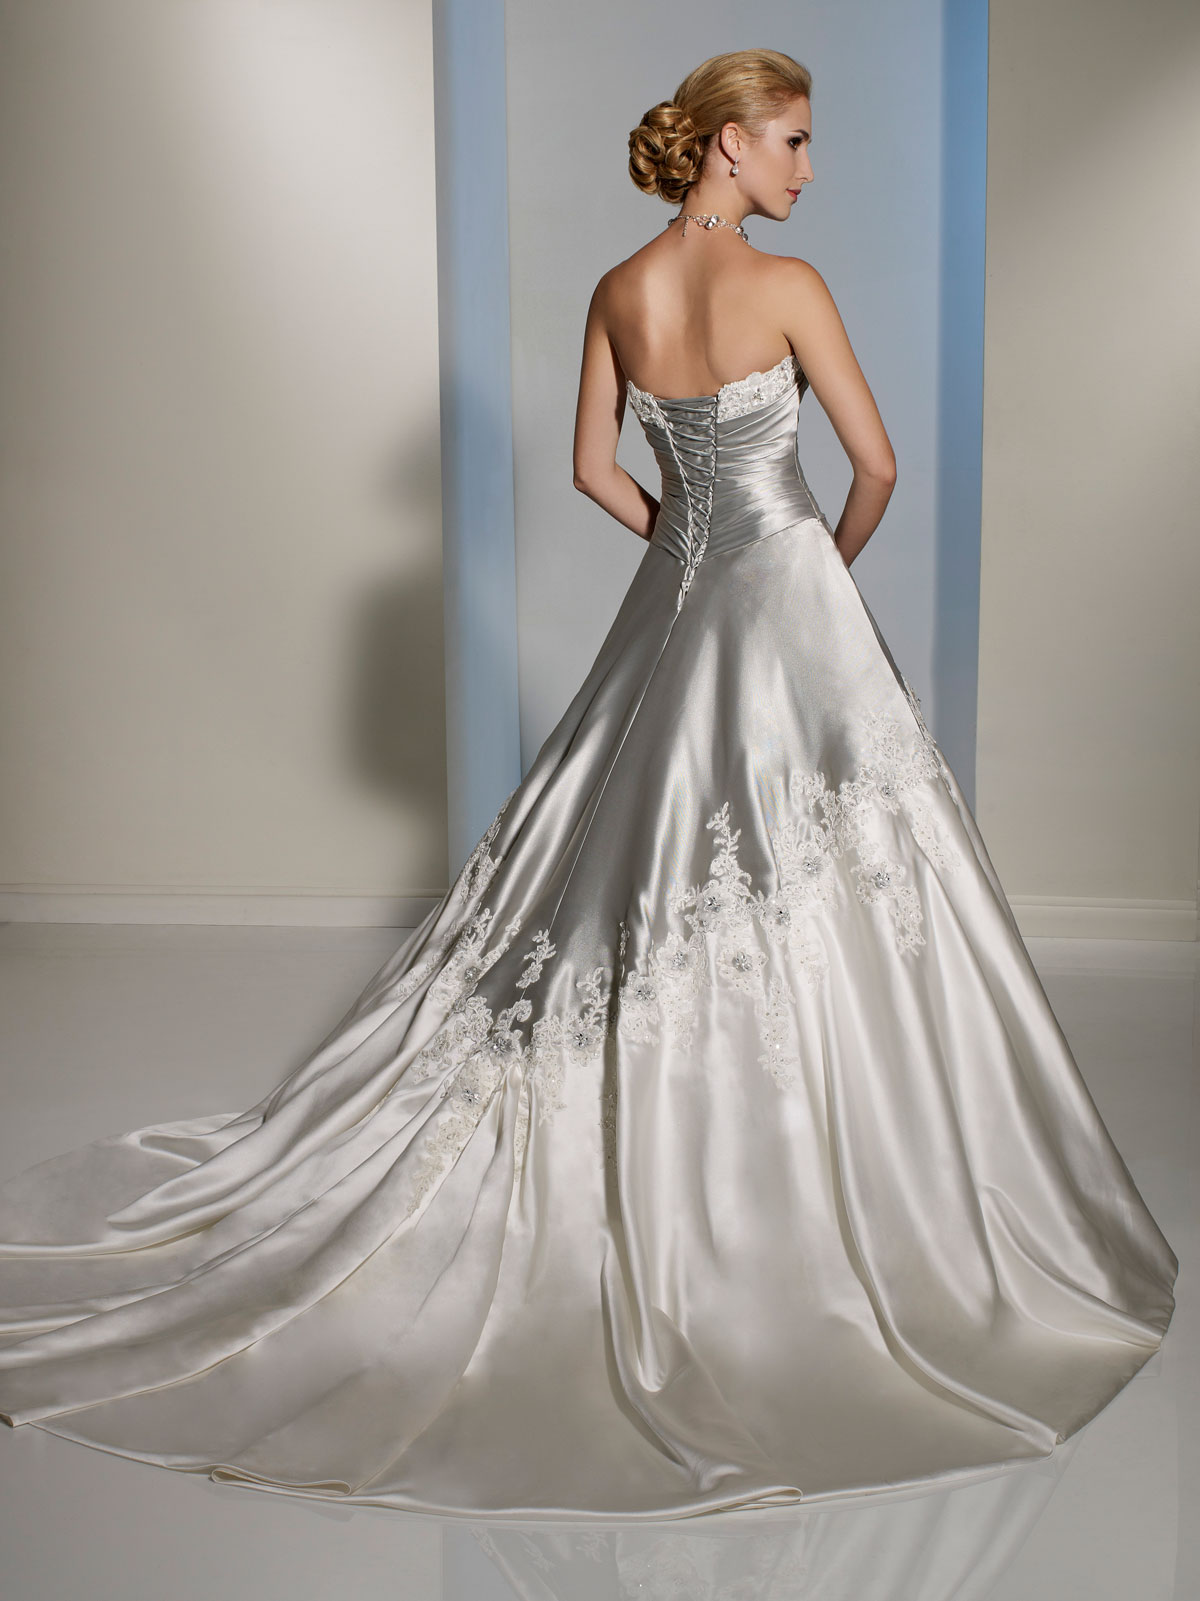 Ivory And Silver Wedding Dress